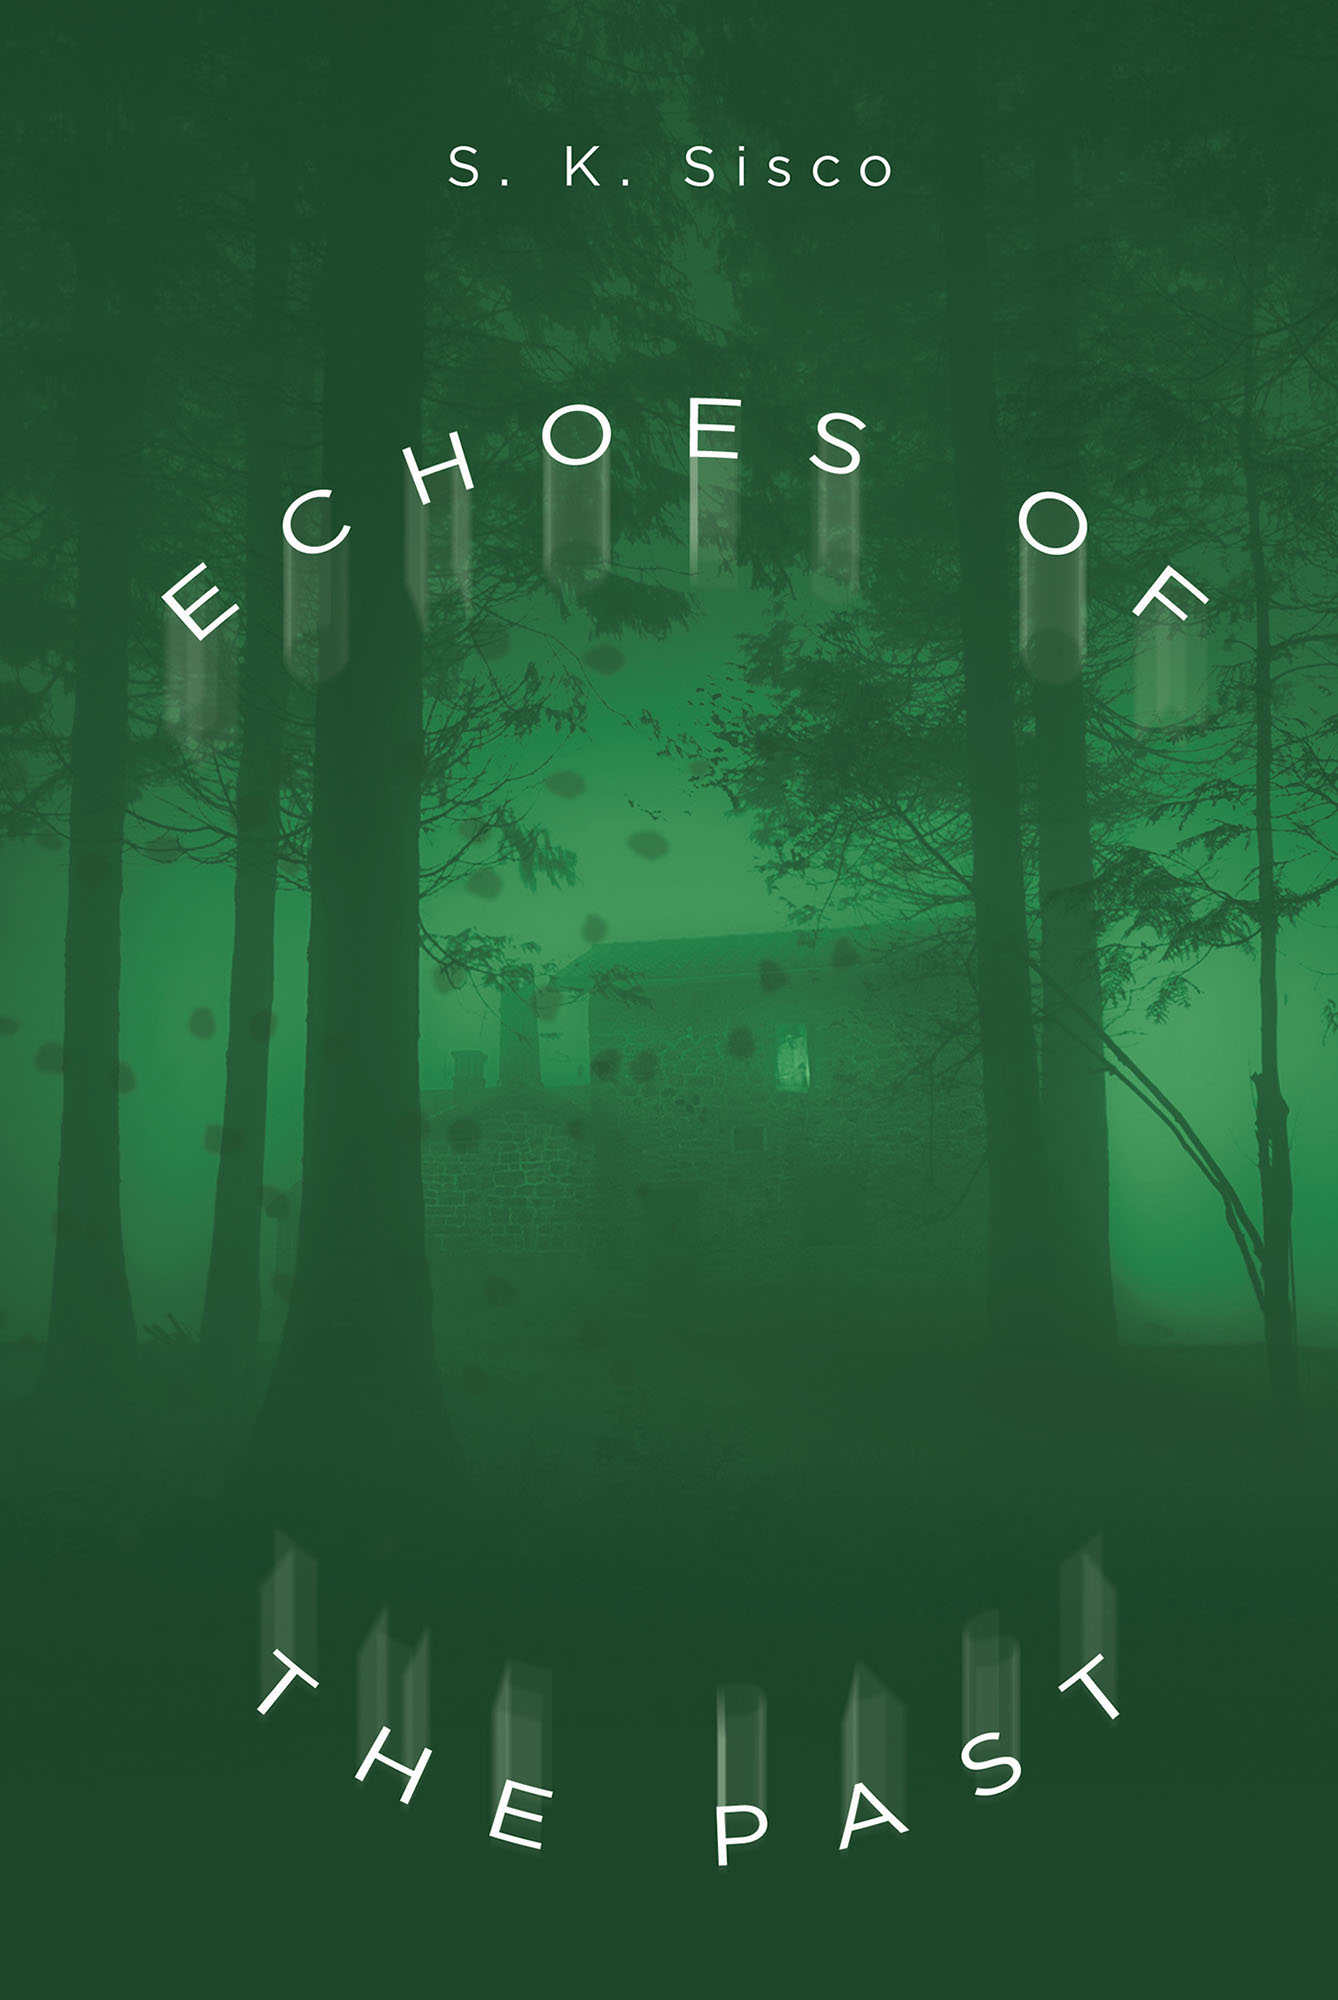 Author S K  Sisco's New Book 'Echoes of the Past' is the